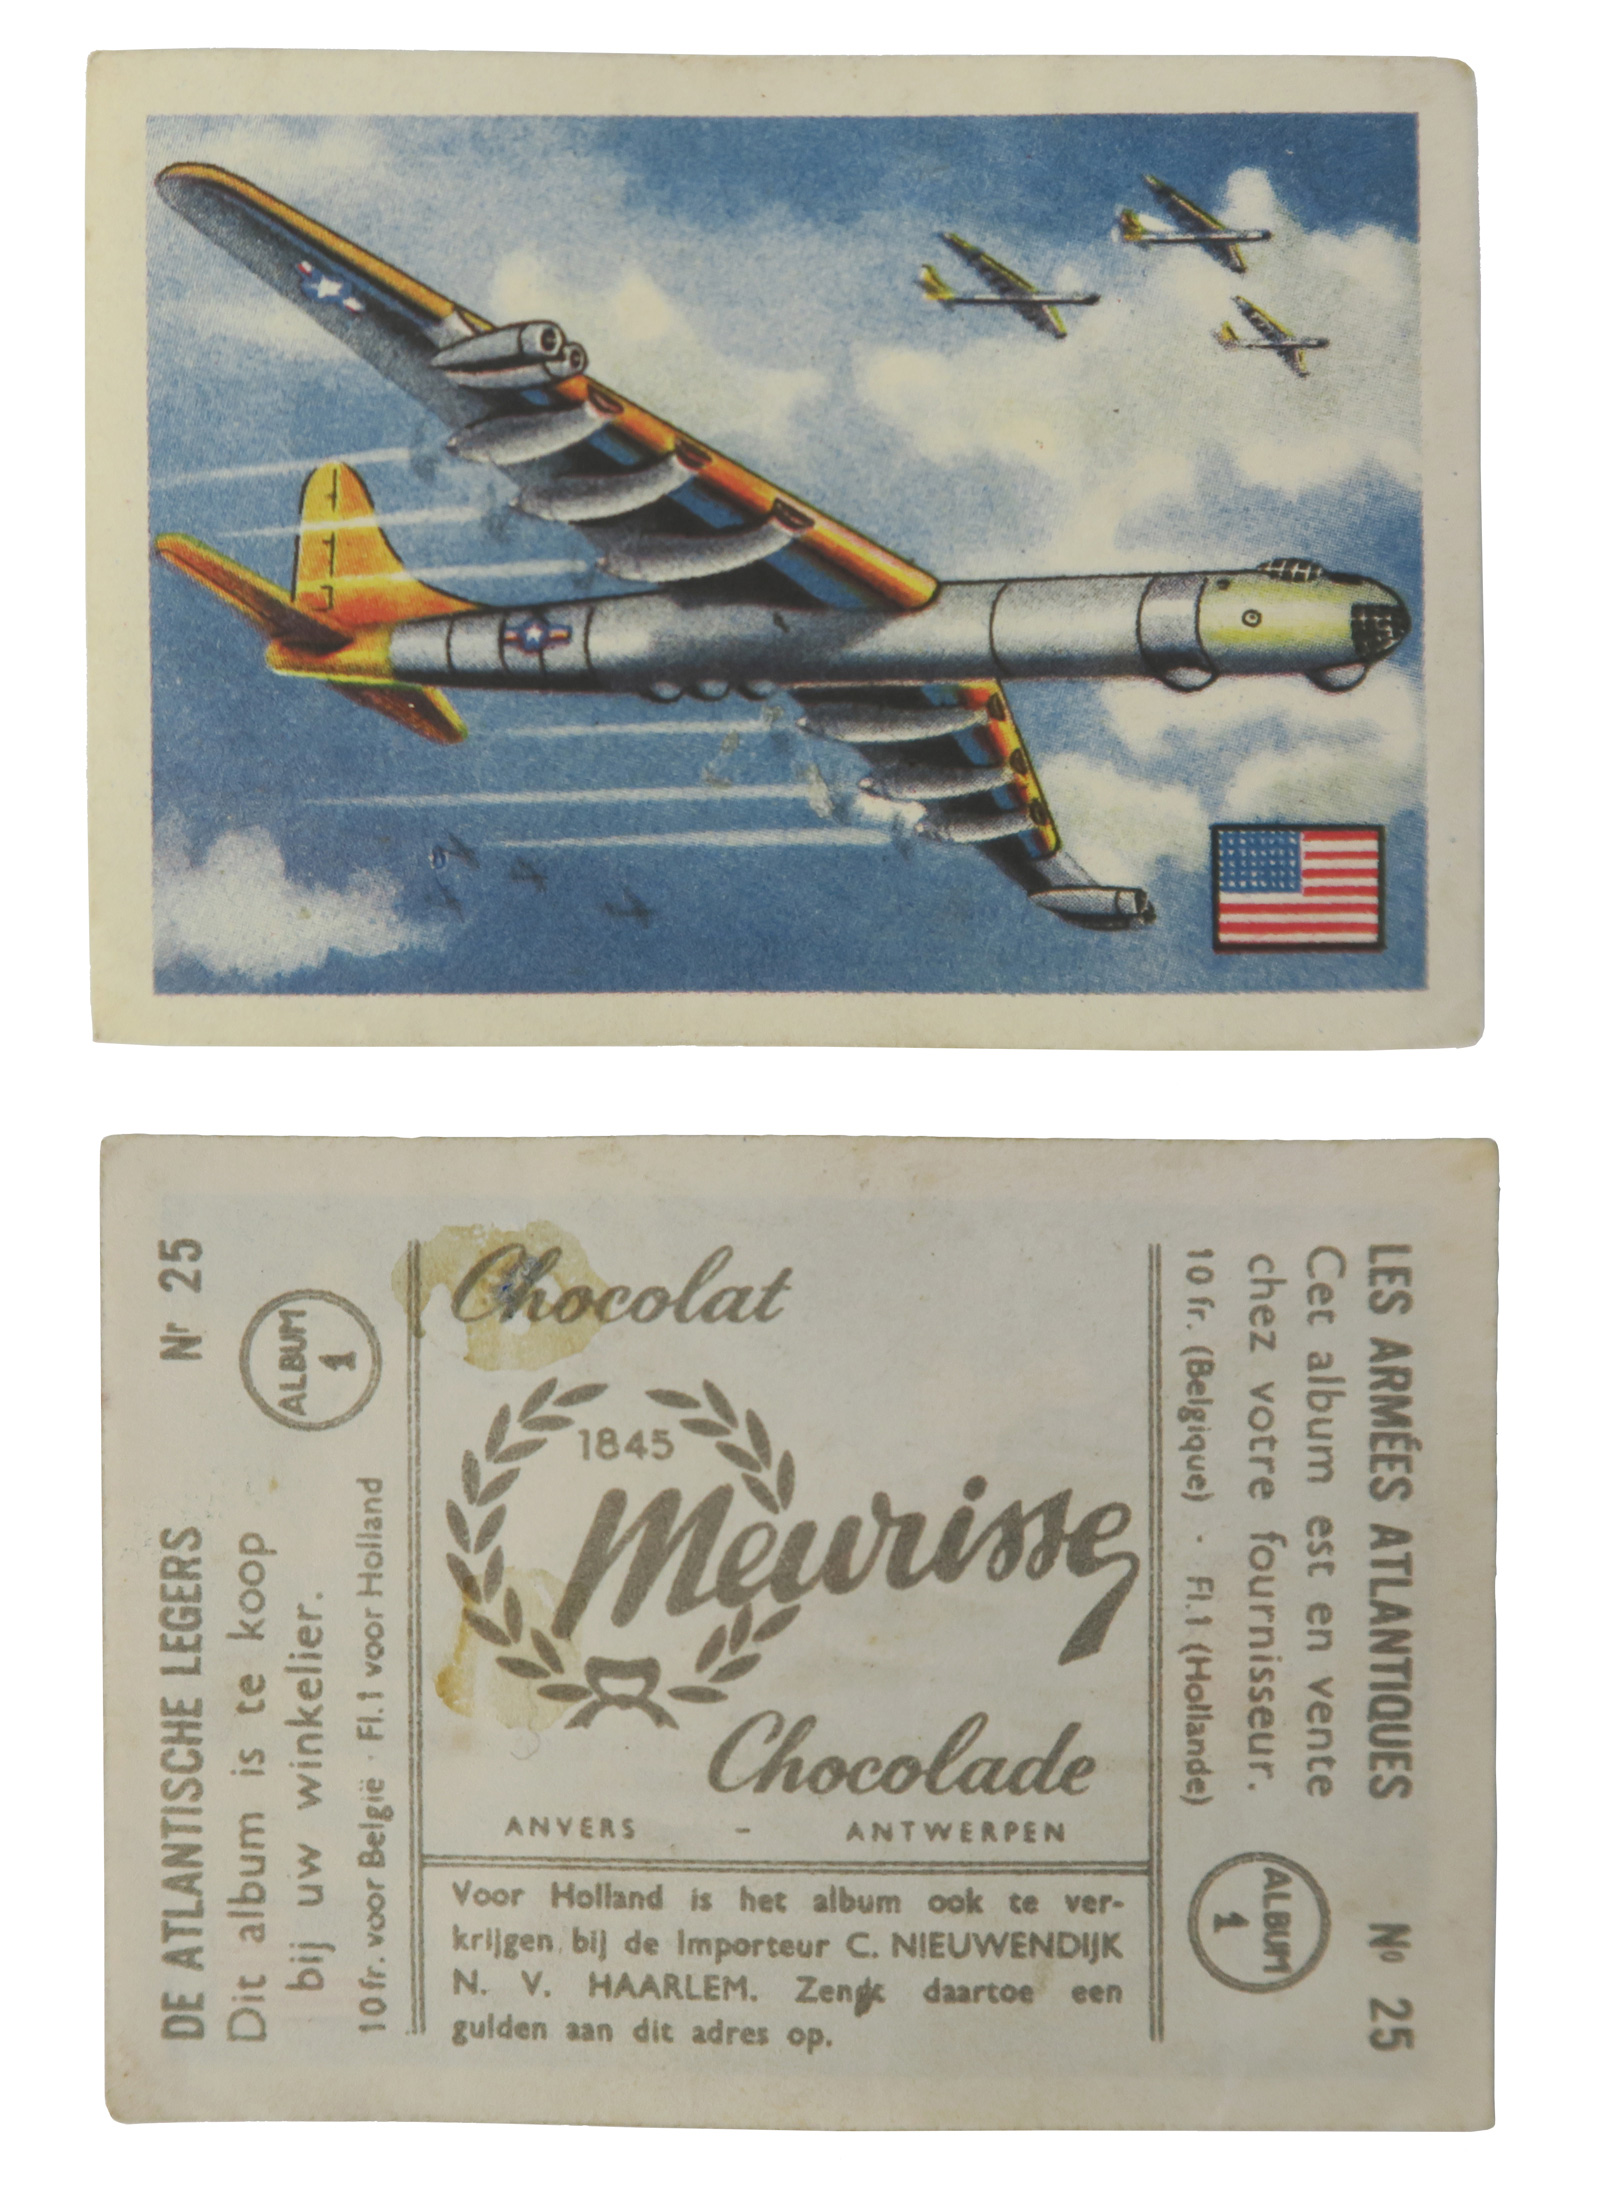 Convair B-36 #25  Series: Les Armées Atlantiques Atlantic Armies Series #25 Manufacture: Chocolat Meurisse Card Dimensions: 2.75 x 2 inches Belgium -1956